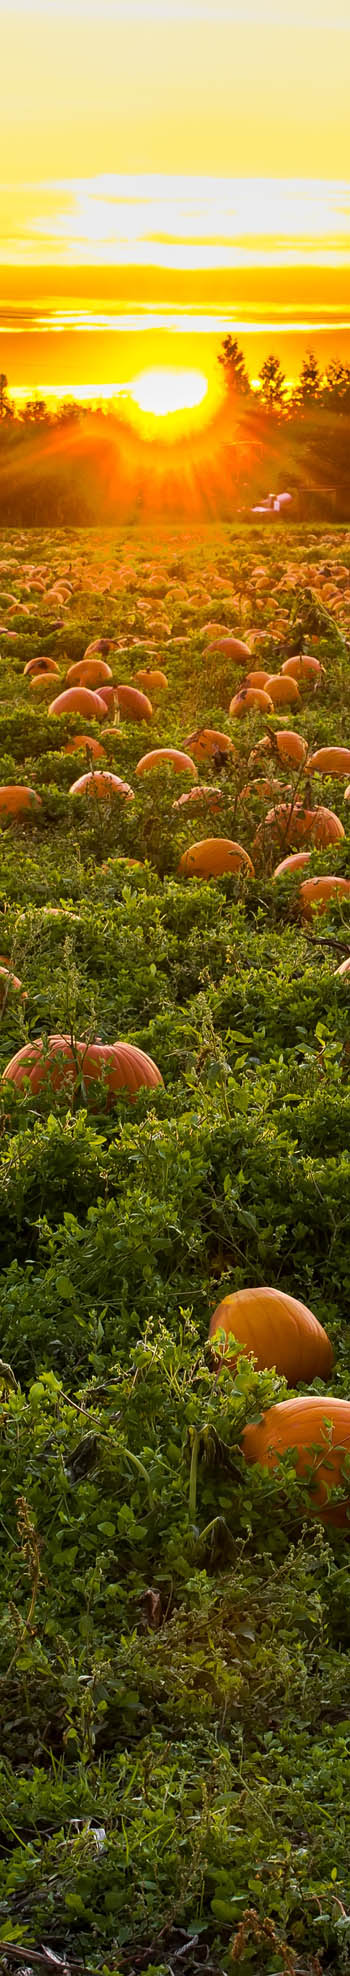 Pick Your Own Pumpkin Field Picture